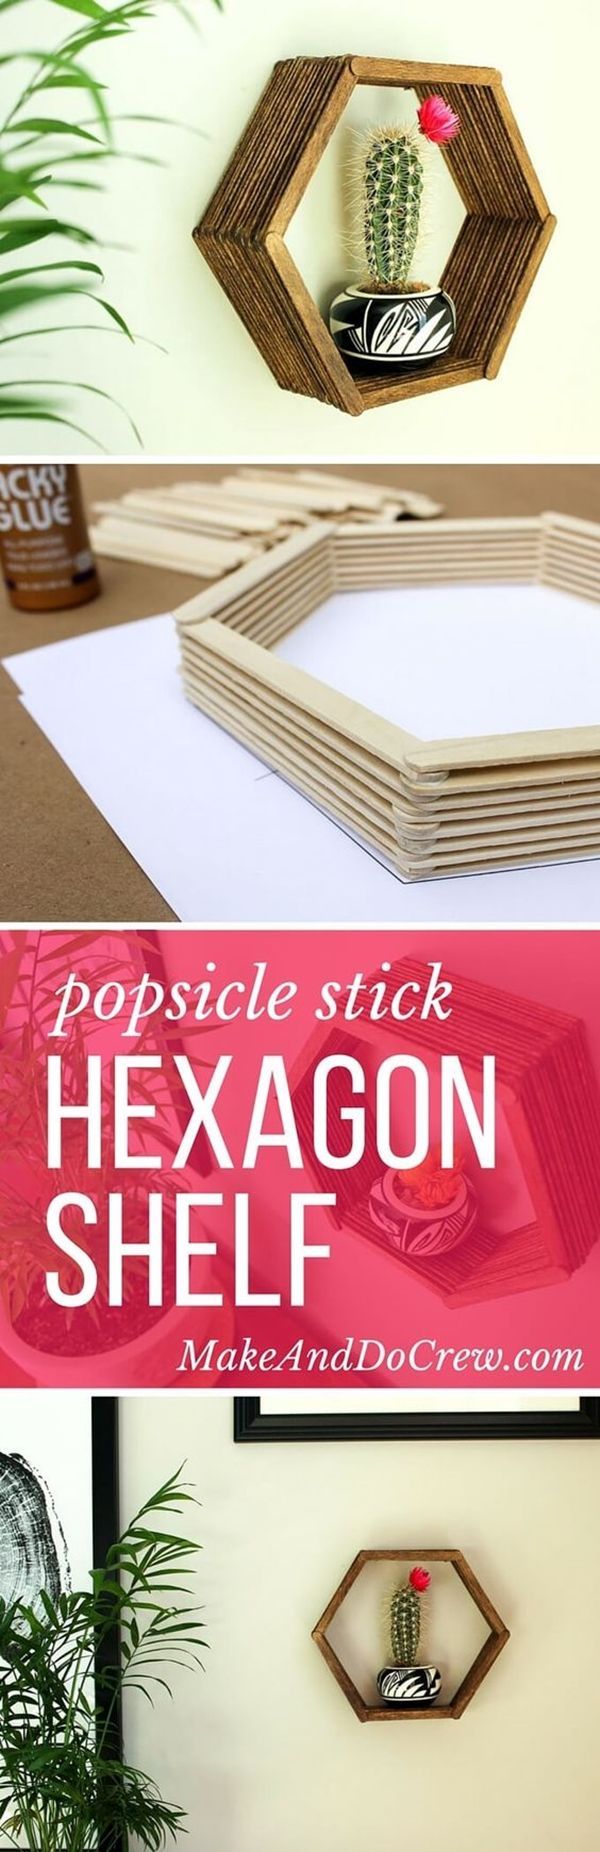 30 Amazing Popsicle Stick Crafts and Projects is part of Amazing Popsicle Stick Crafts And Projects Buzz - Art comes from within and let it pop to give you fun and Amazing Popsicle Stick Crafts and Projects